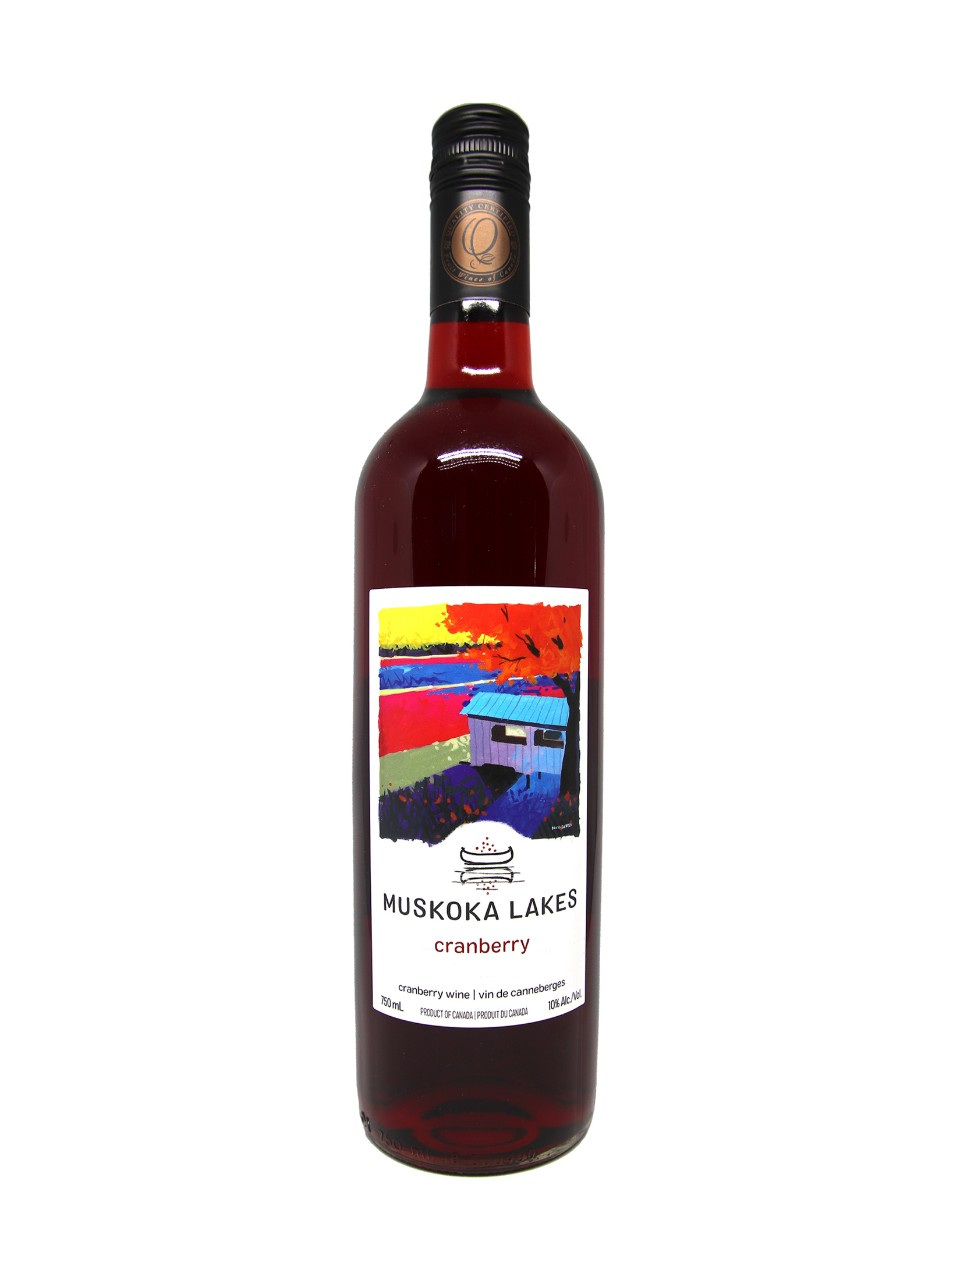 Muskoka Lakes Cranberry Wine from LCBO